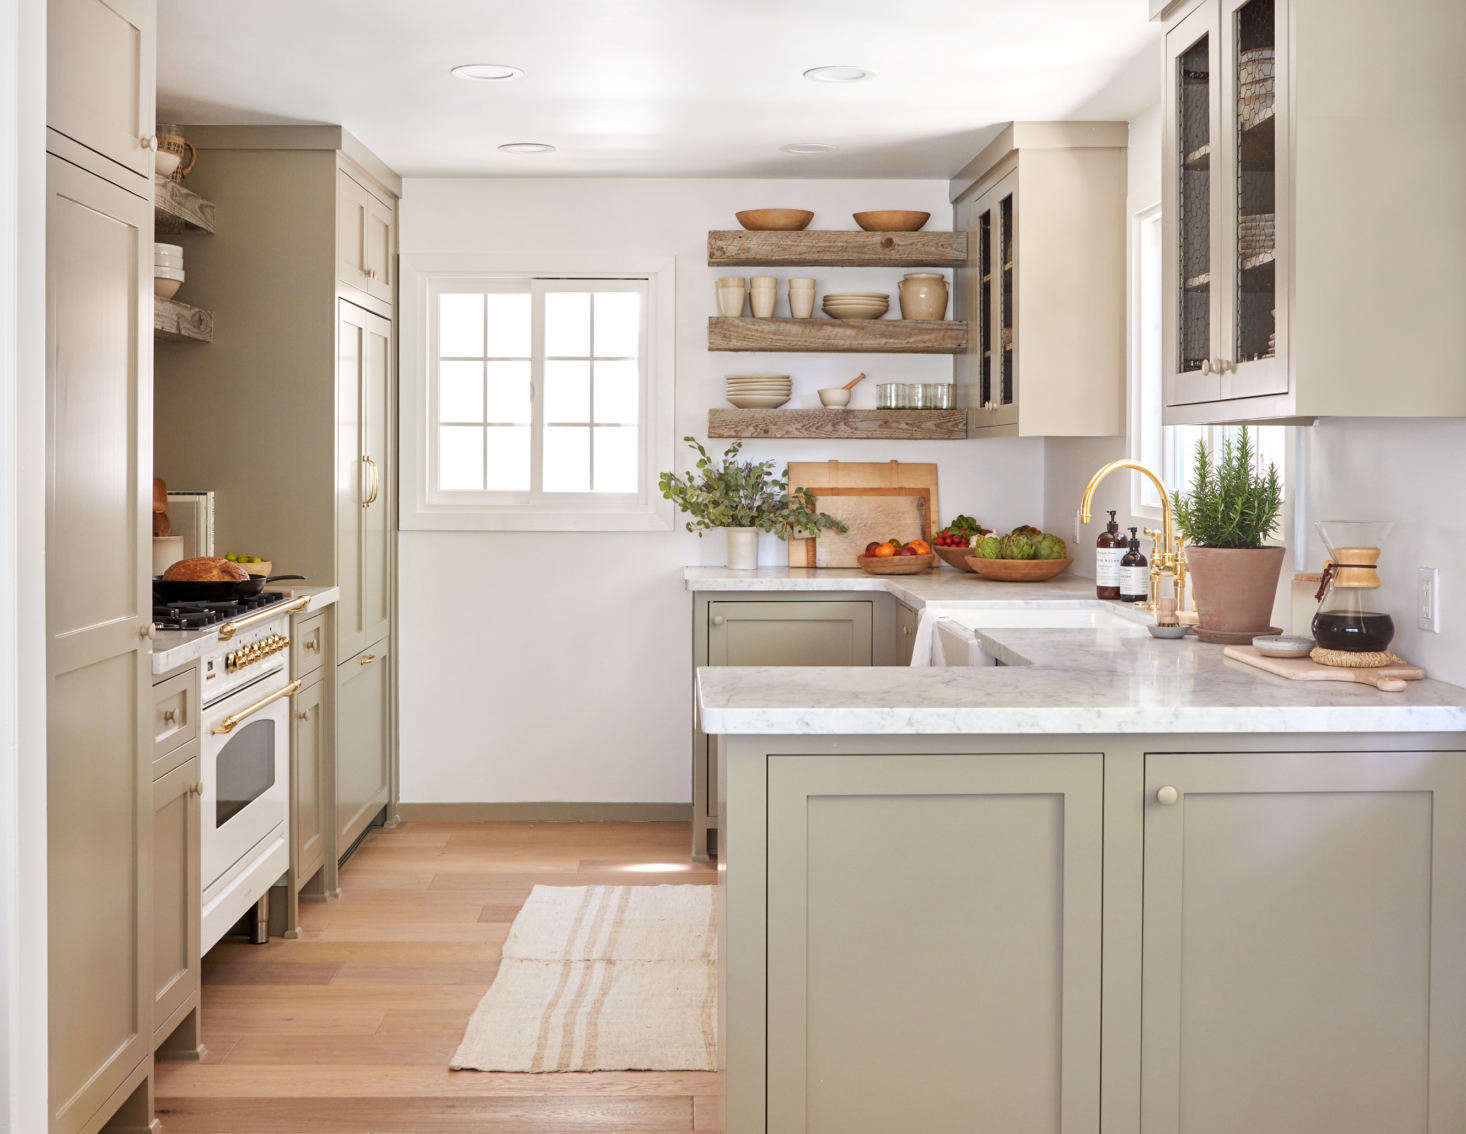 The team re-envisioned a dark and cramped kitchen into a compact but open-feeling space. The cabinets are custom, made by a local carpenter and painted in a subtle earthy tone, Farrow & Ball&#8